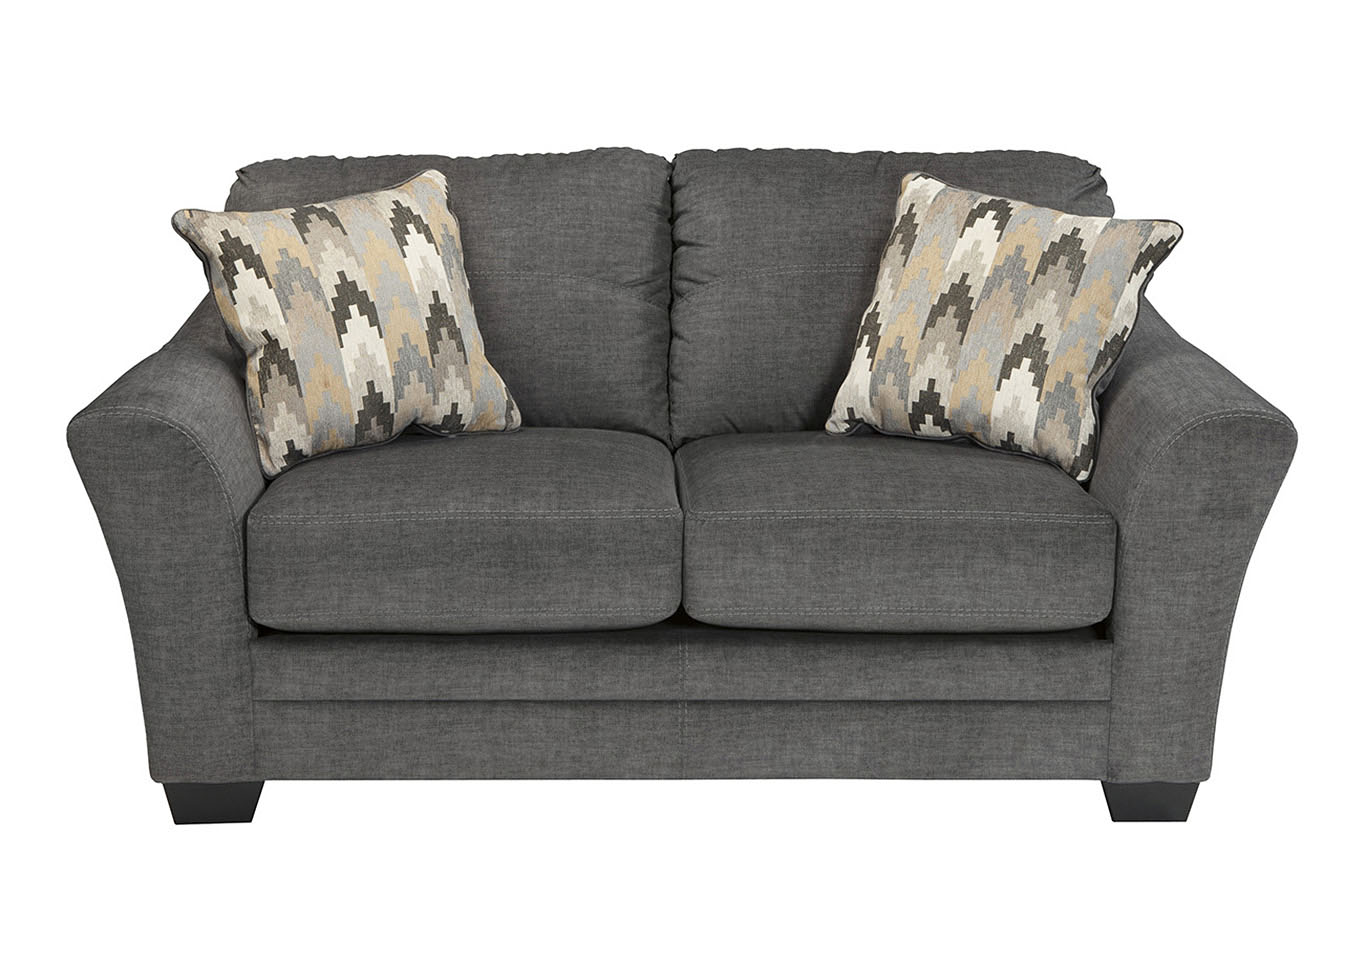 Oak Furniture Liquidators Braxlin Charcoal Loveseat